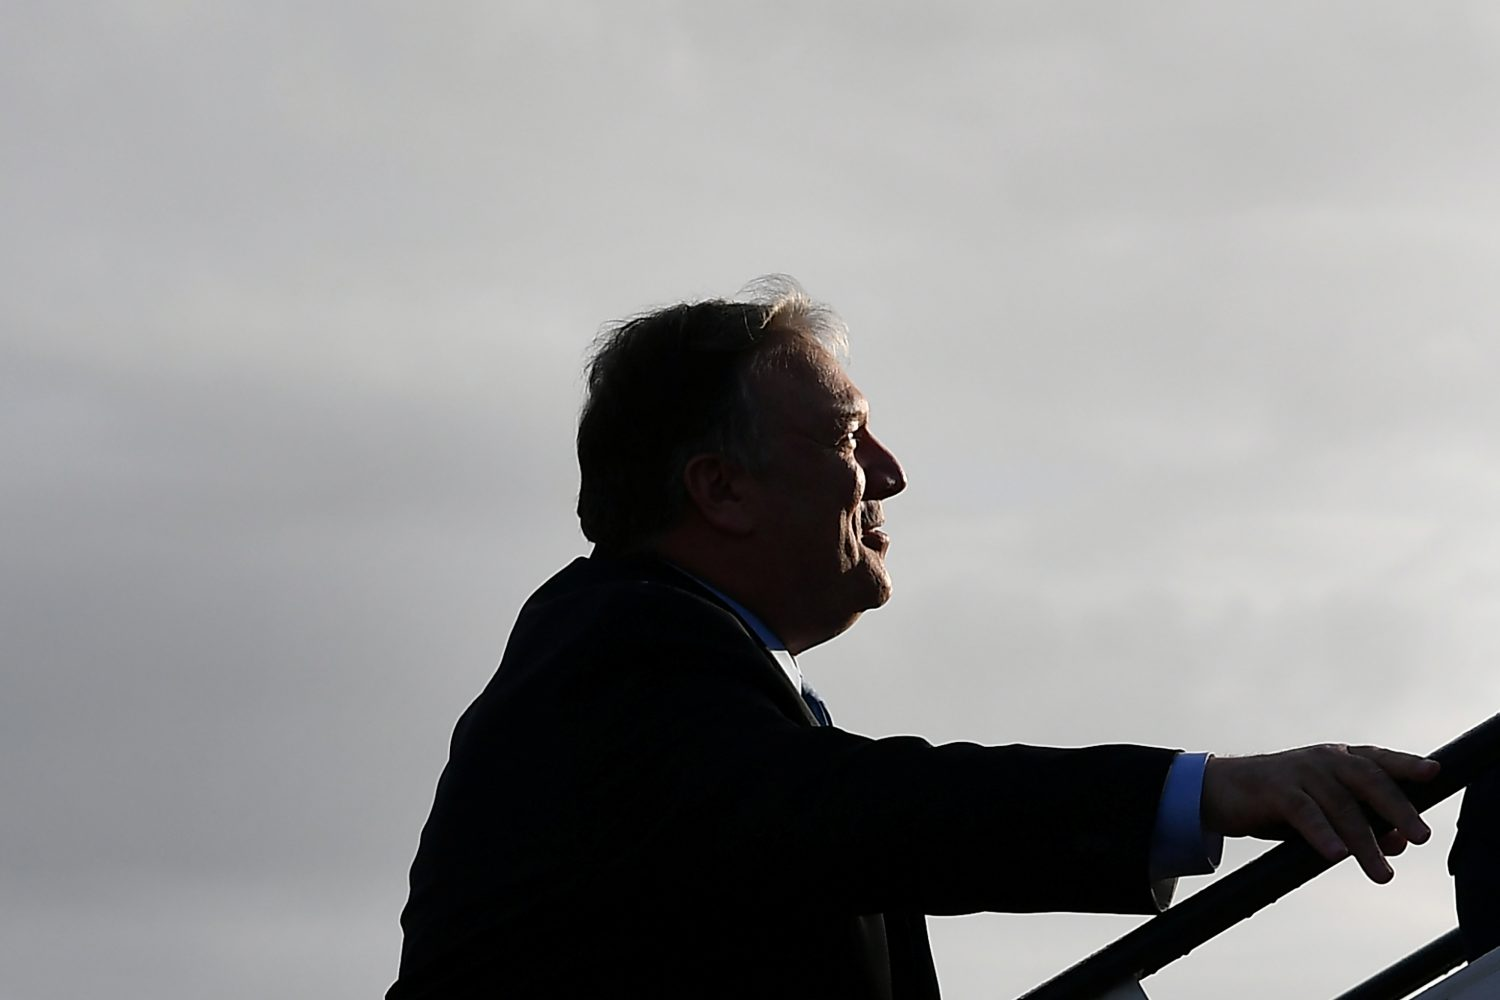 U.S. Secretary of State Mike Pompeo boards a plane before departing from London Stansted Airport, north of London, Britain May 9, 2019. Mandel Ngan/Pool via REUTERS